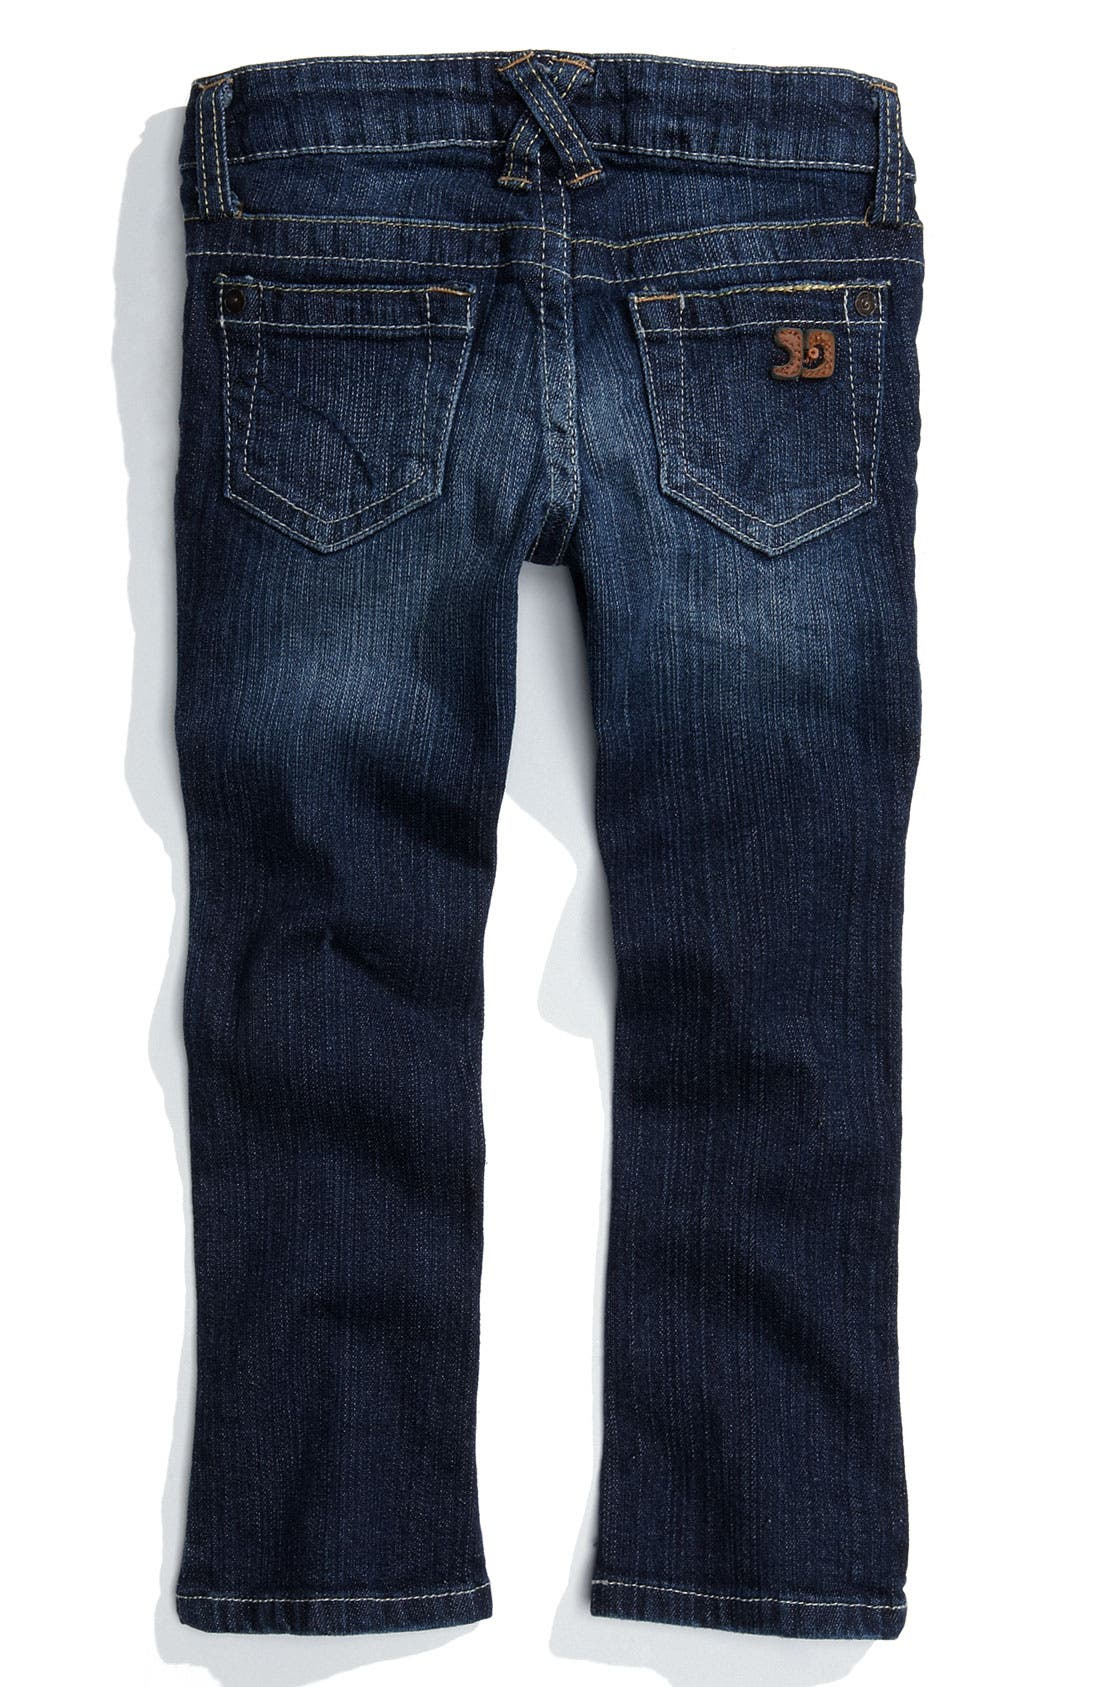 Alternate Image 1 Selected - Joe's 'Micro Flare' Jeans (Toddler Girl)